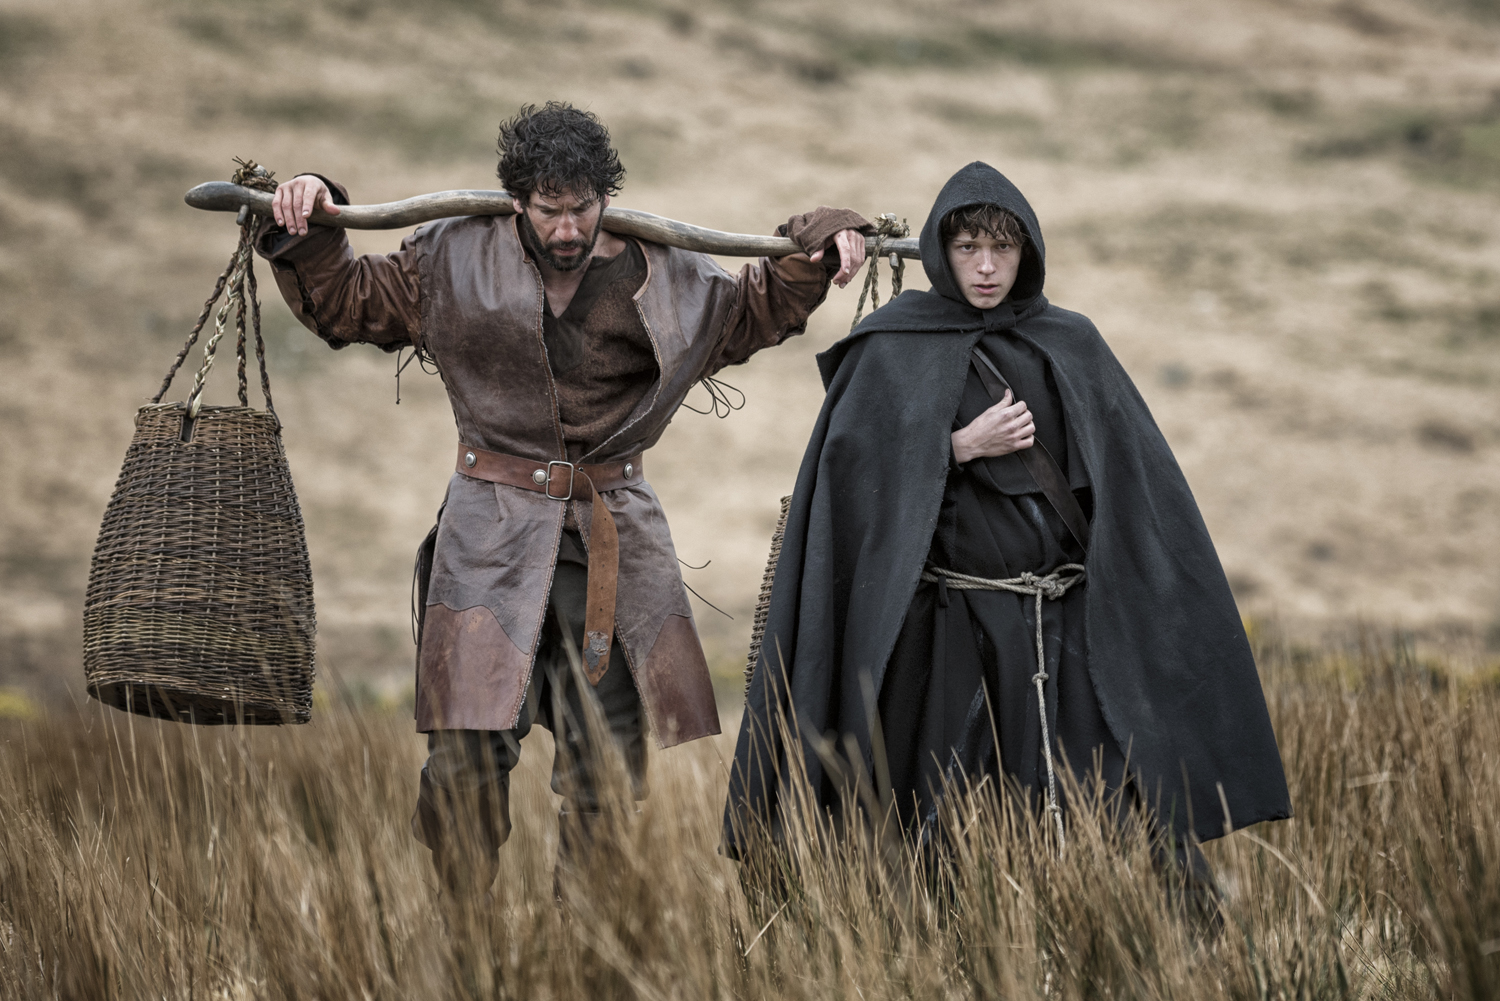 Violence and star power are not enough to make 'Pilgrimage' a journey worth taking